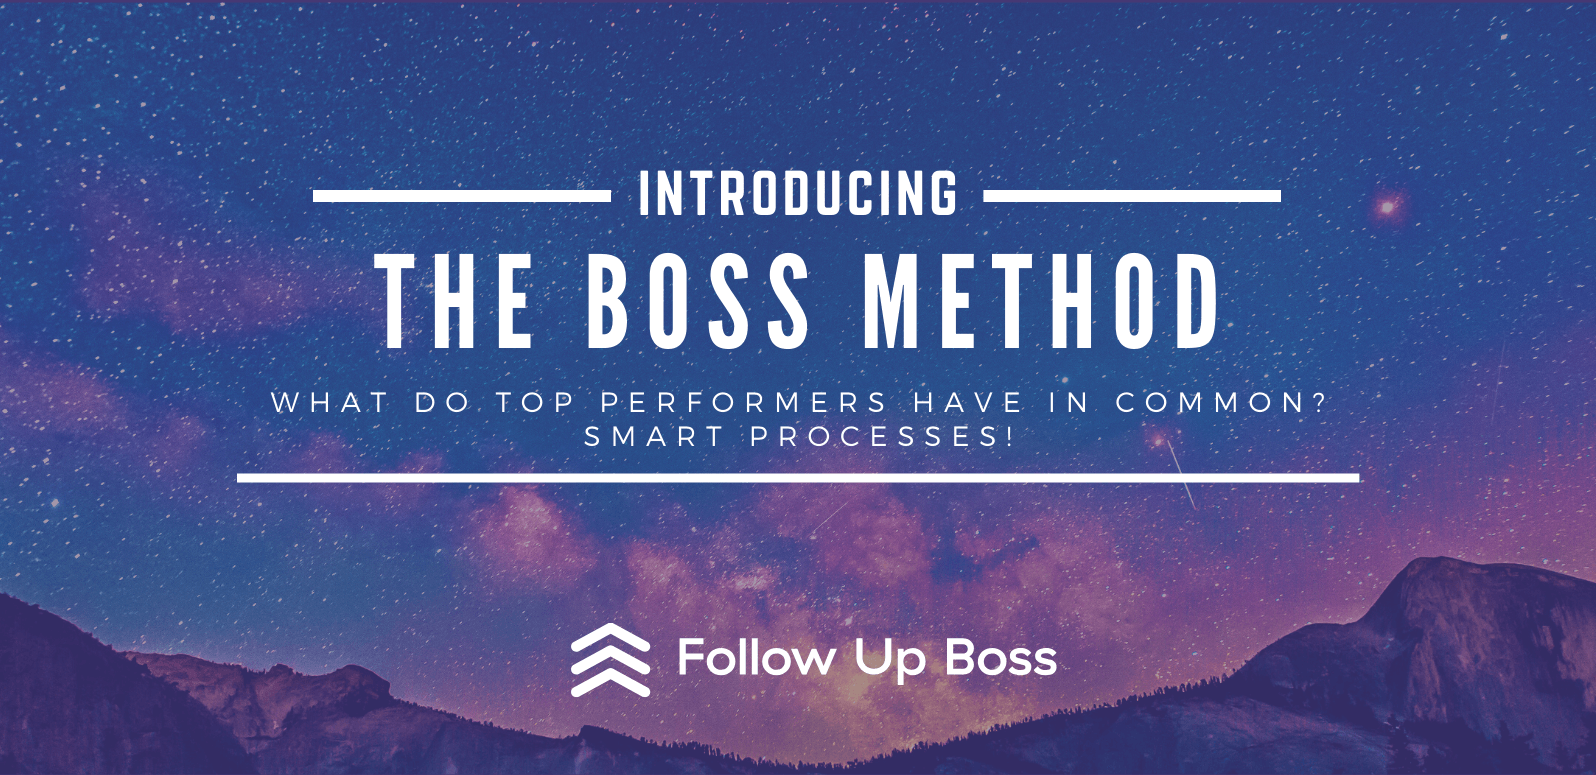 Introducing The Boss Method